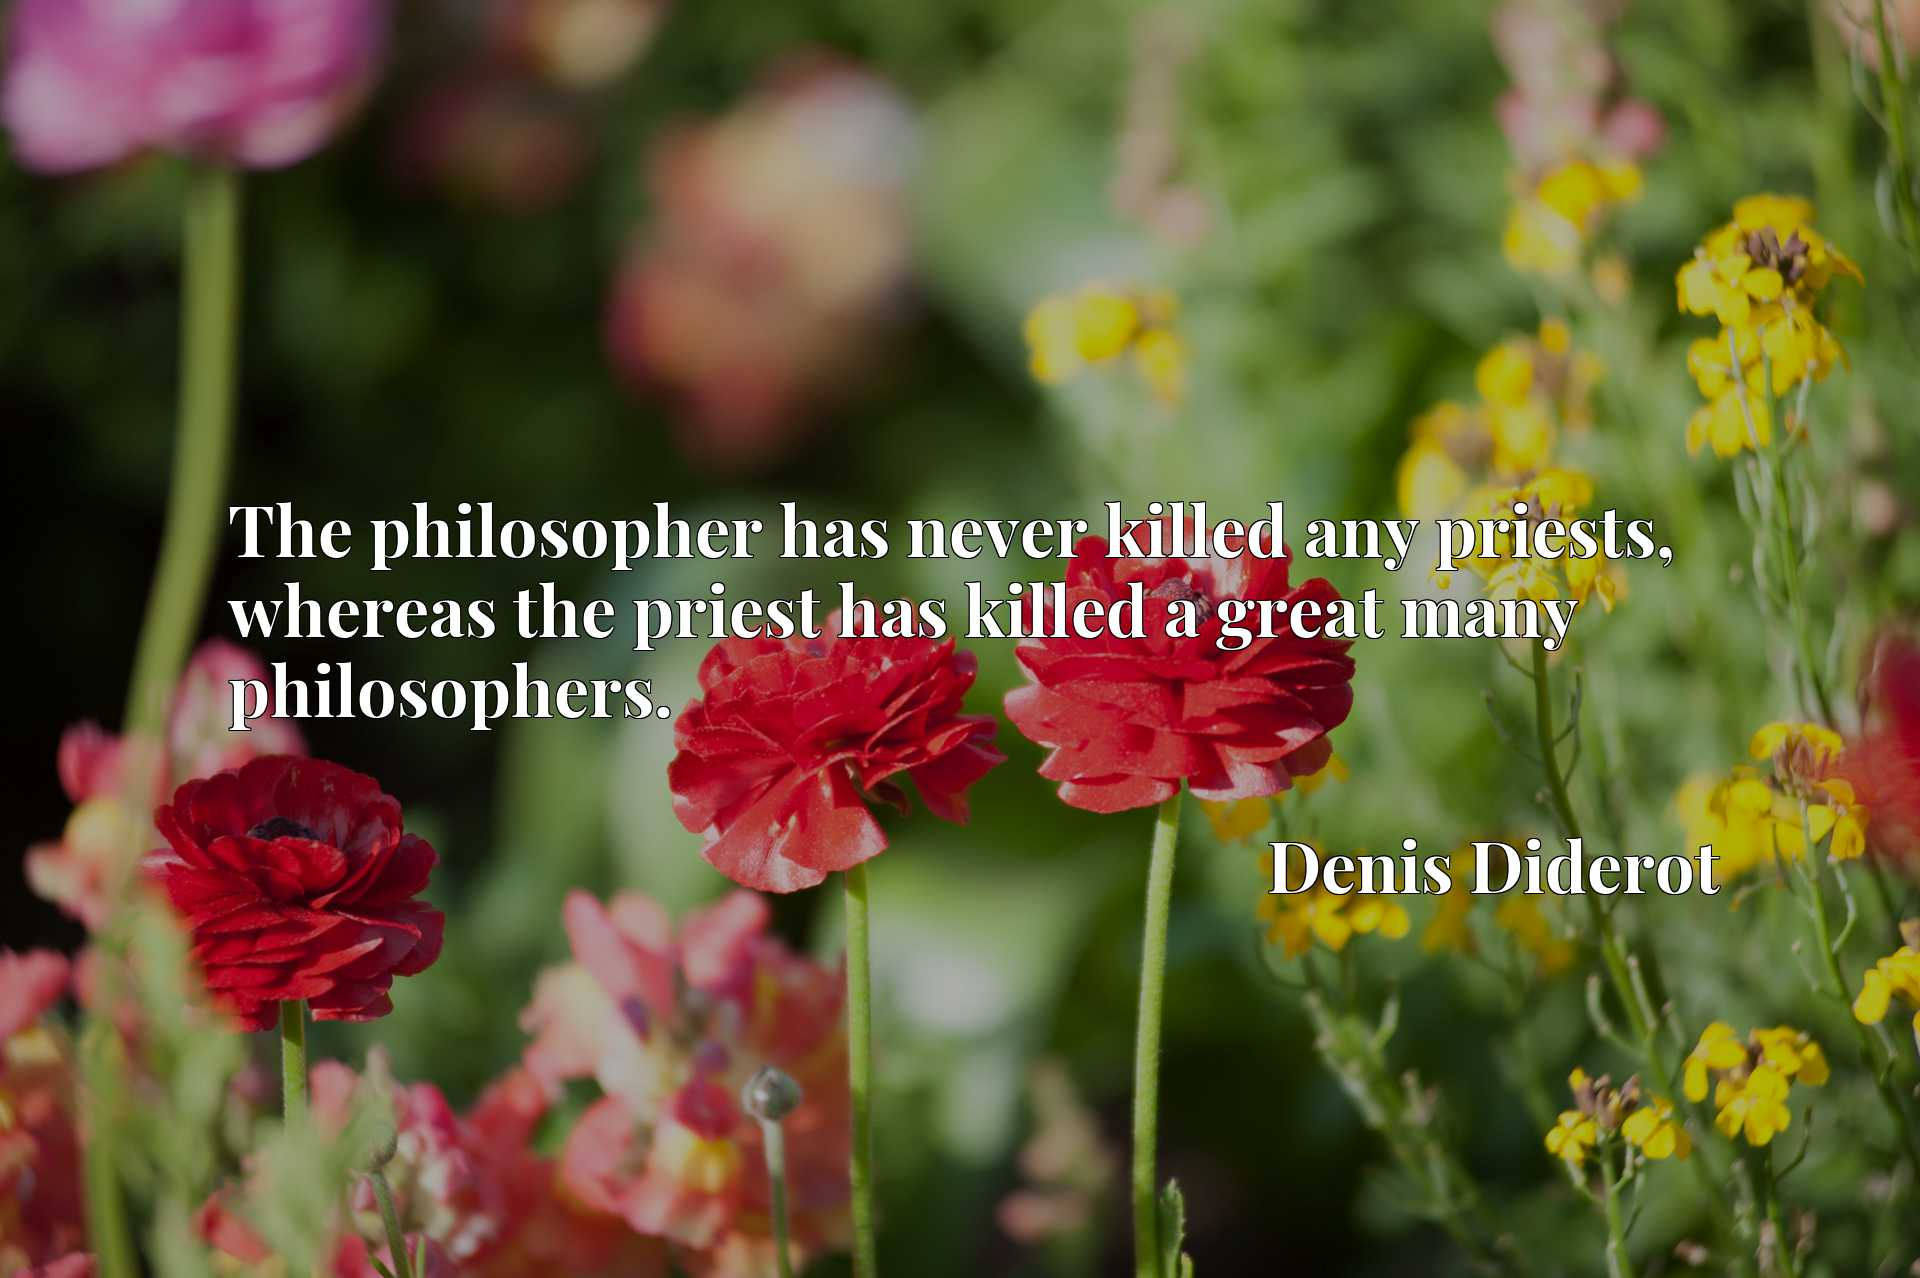 The philosopher has never killed any priests, whereas the priest has killed a great many philosophers.